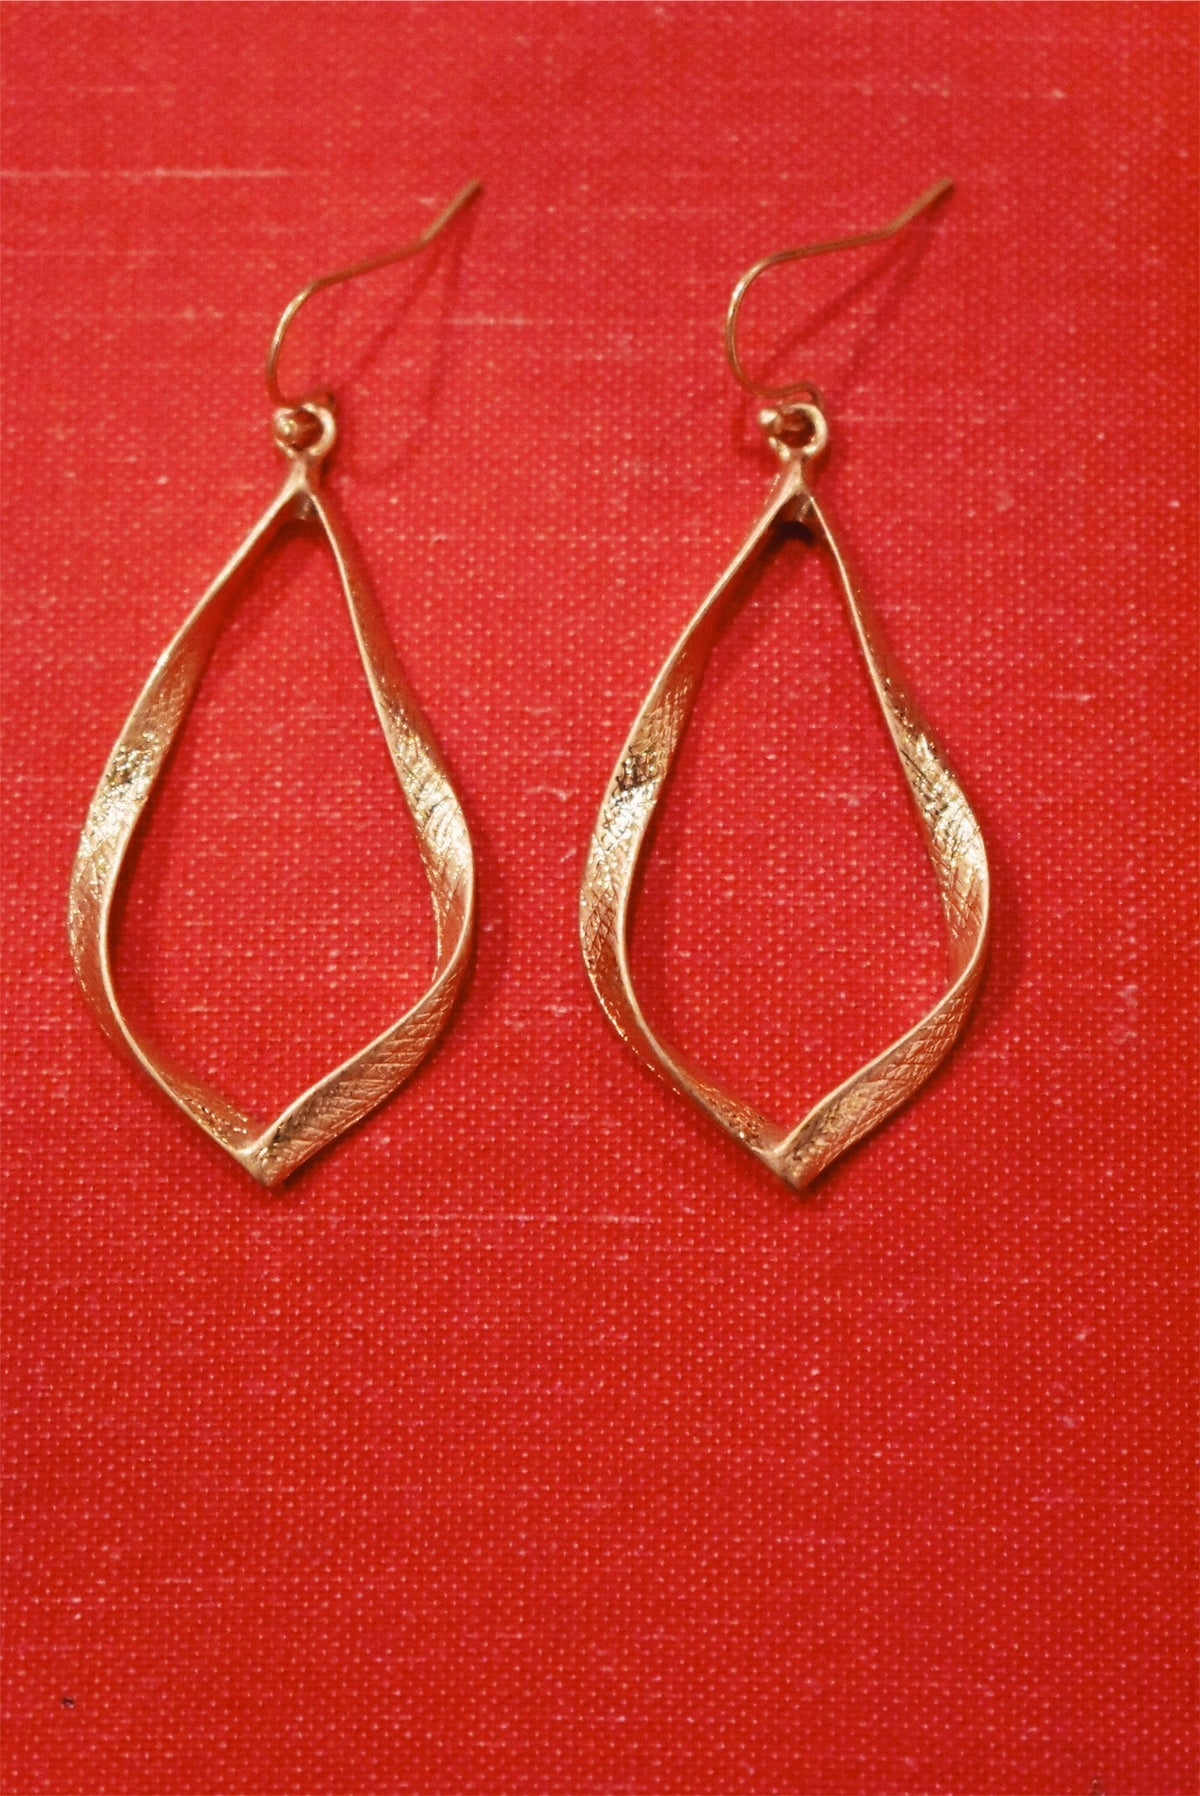 EARRINGS - GOLD WHIMSY TEARDROP